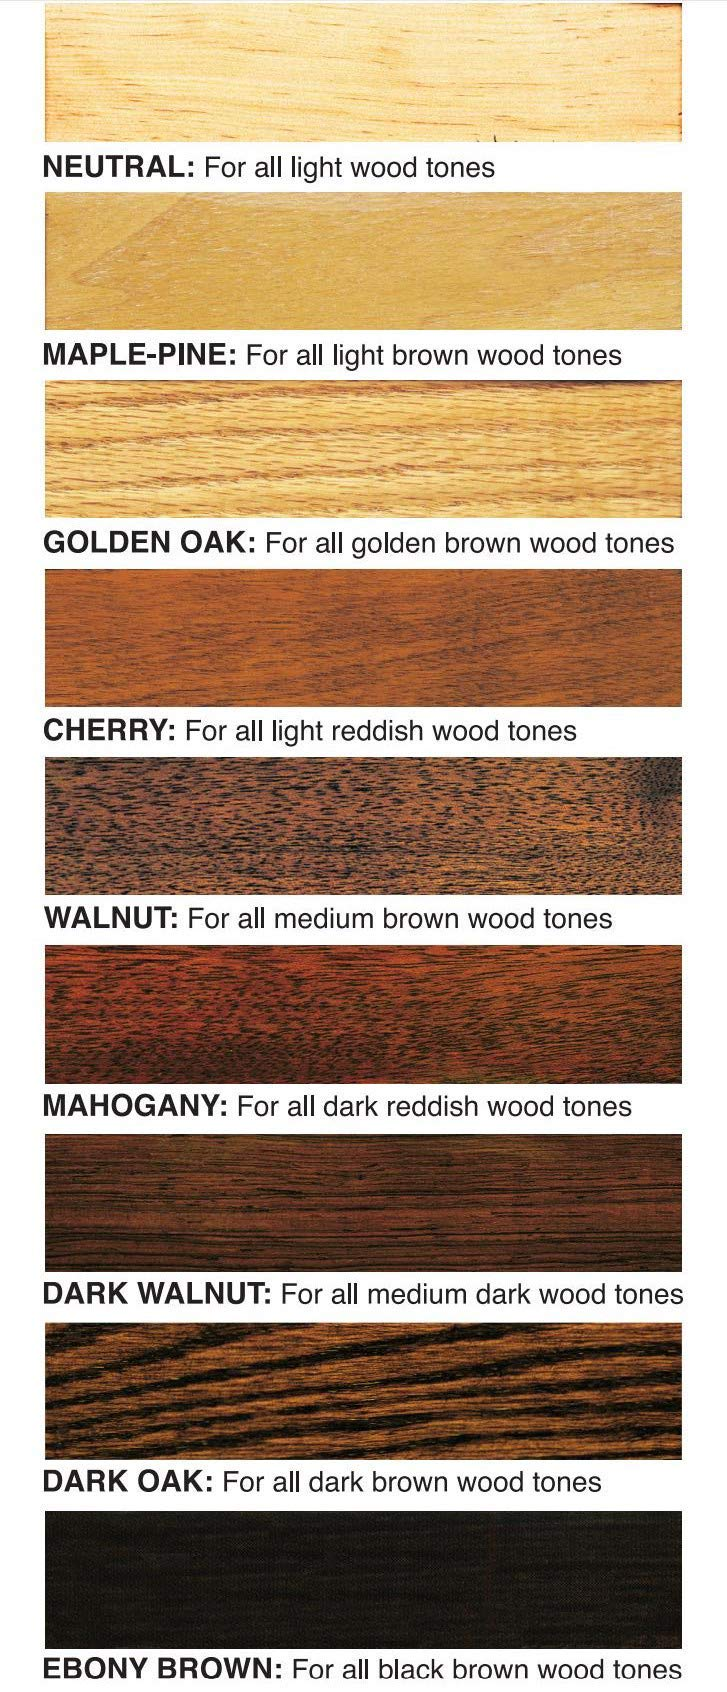 Complete Wood Restoration Kit, Wood Floor Restorer, Orange Oil Cleaner 32 oz, Beeswax Furniture Polish 16 oz, Restore A Finish 16 oz, Cover Scratches and Blemishes (Walnut) by Touch Of Oranges (Image #4)